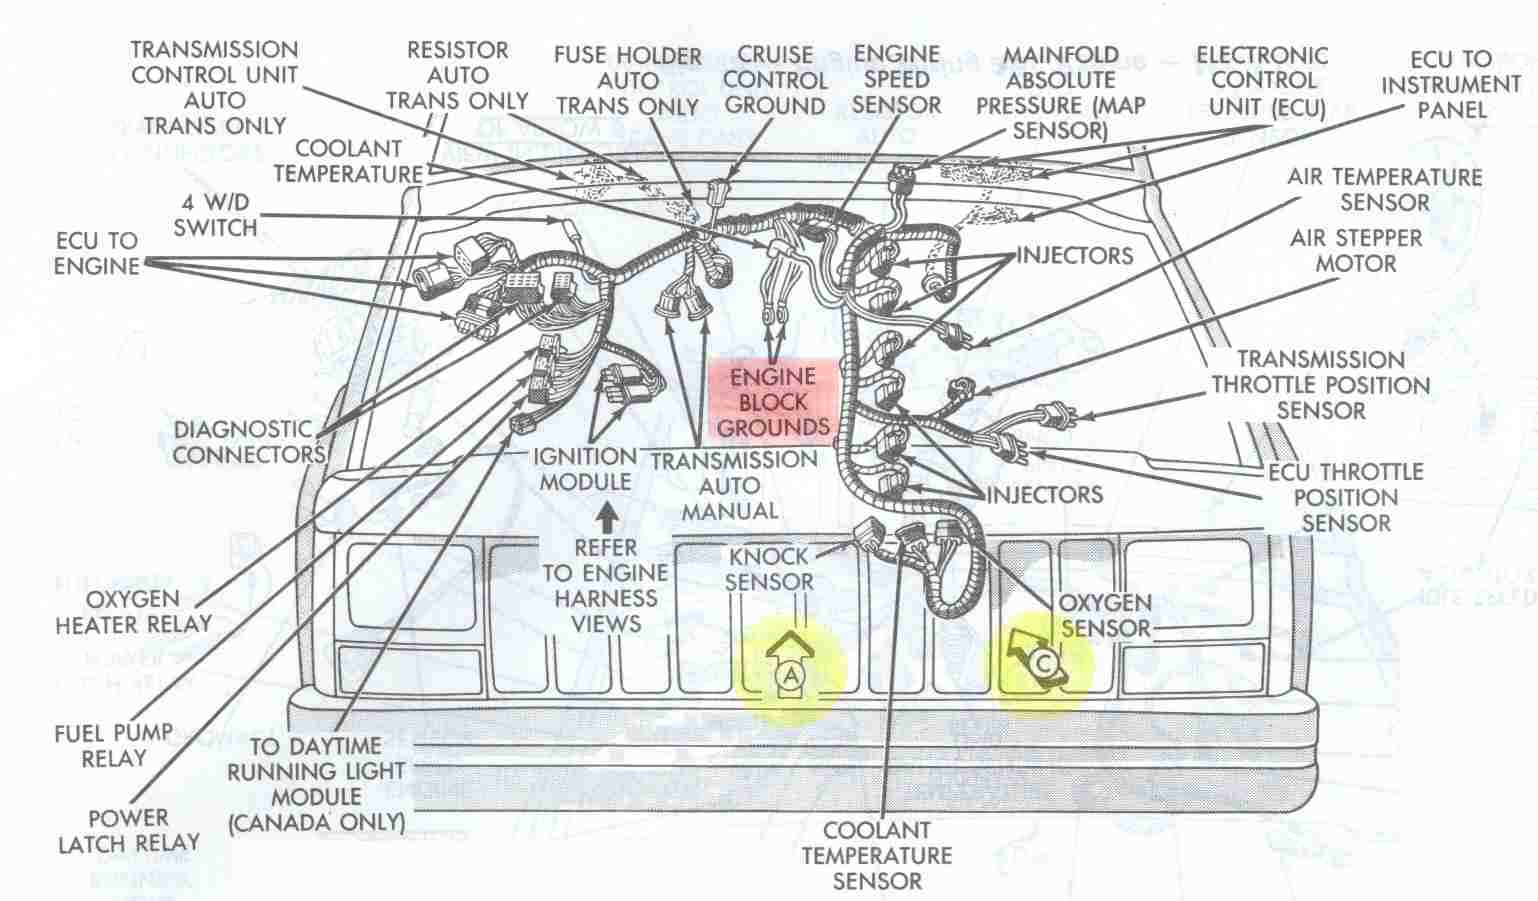 1984 Ford F150 Wiring Diagram Another Blog About Astro Van Ignition 350 Chevy Html Autos Post Harness